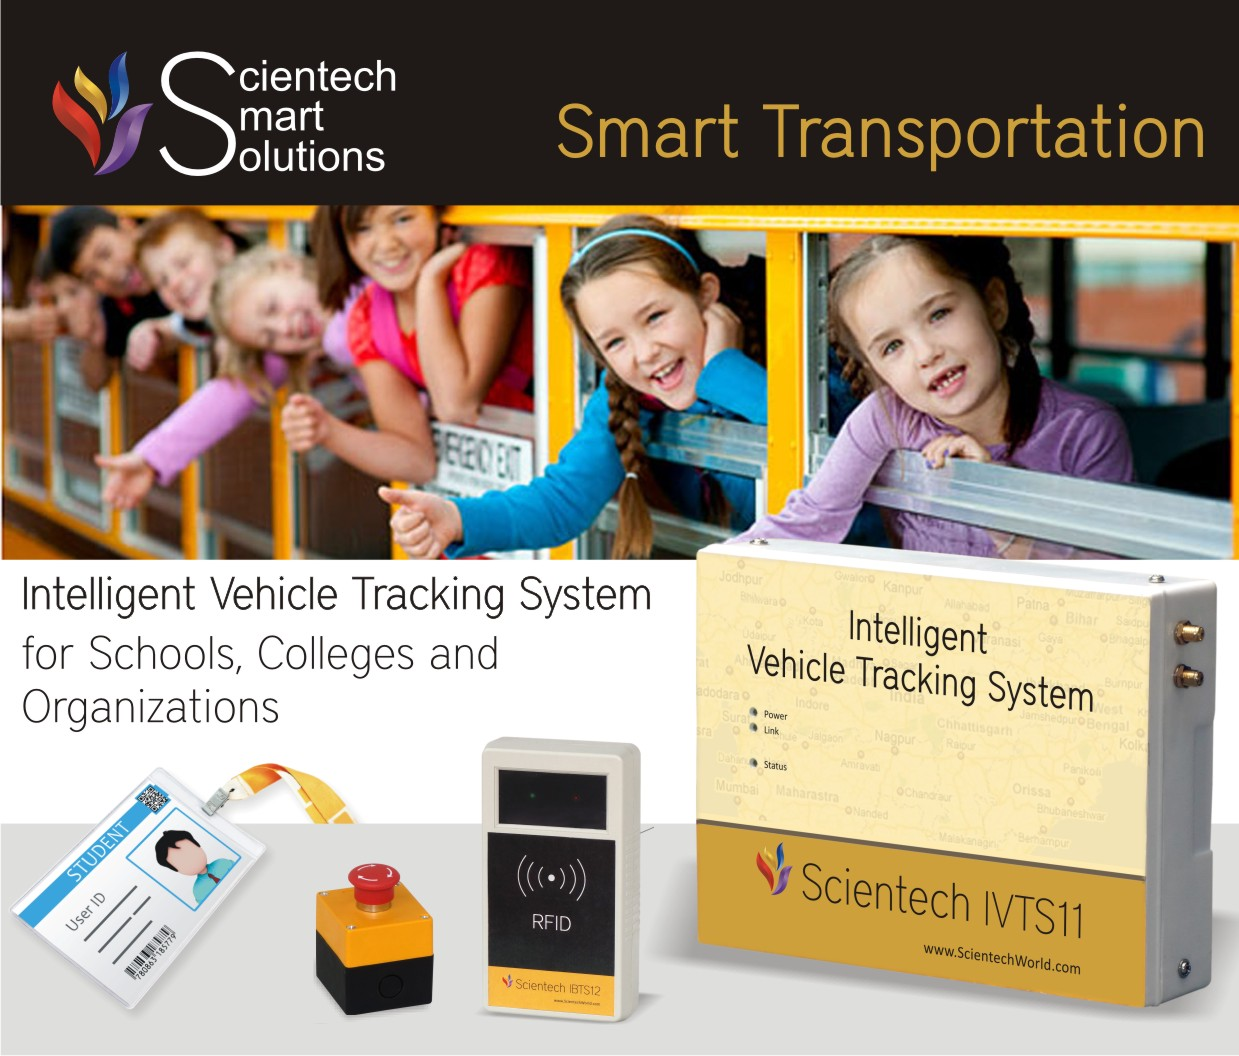 Scientech Smart Transport